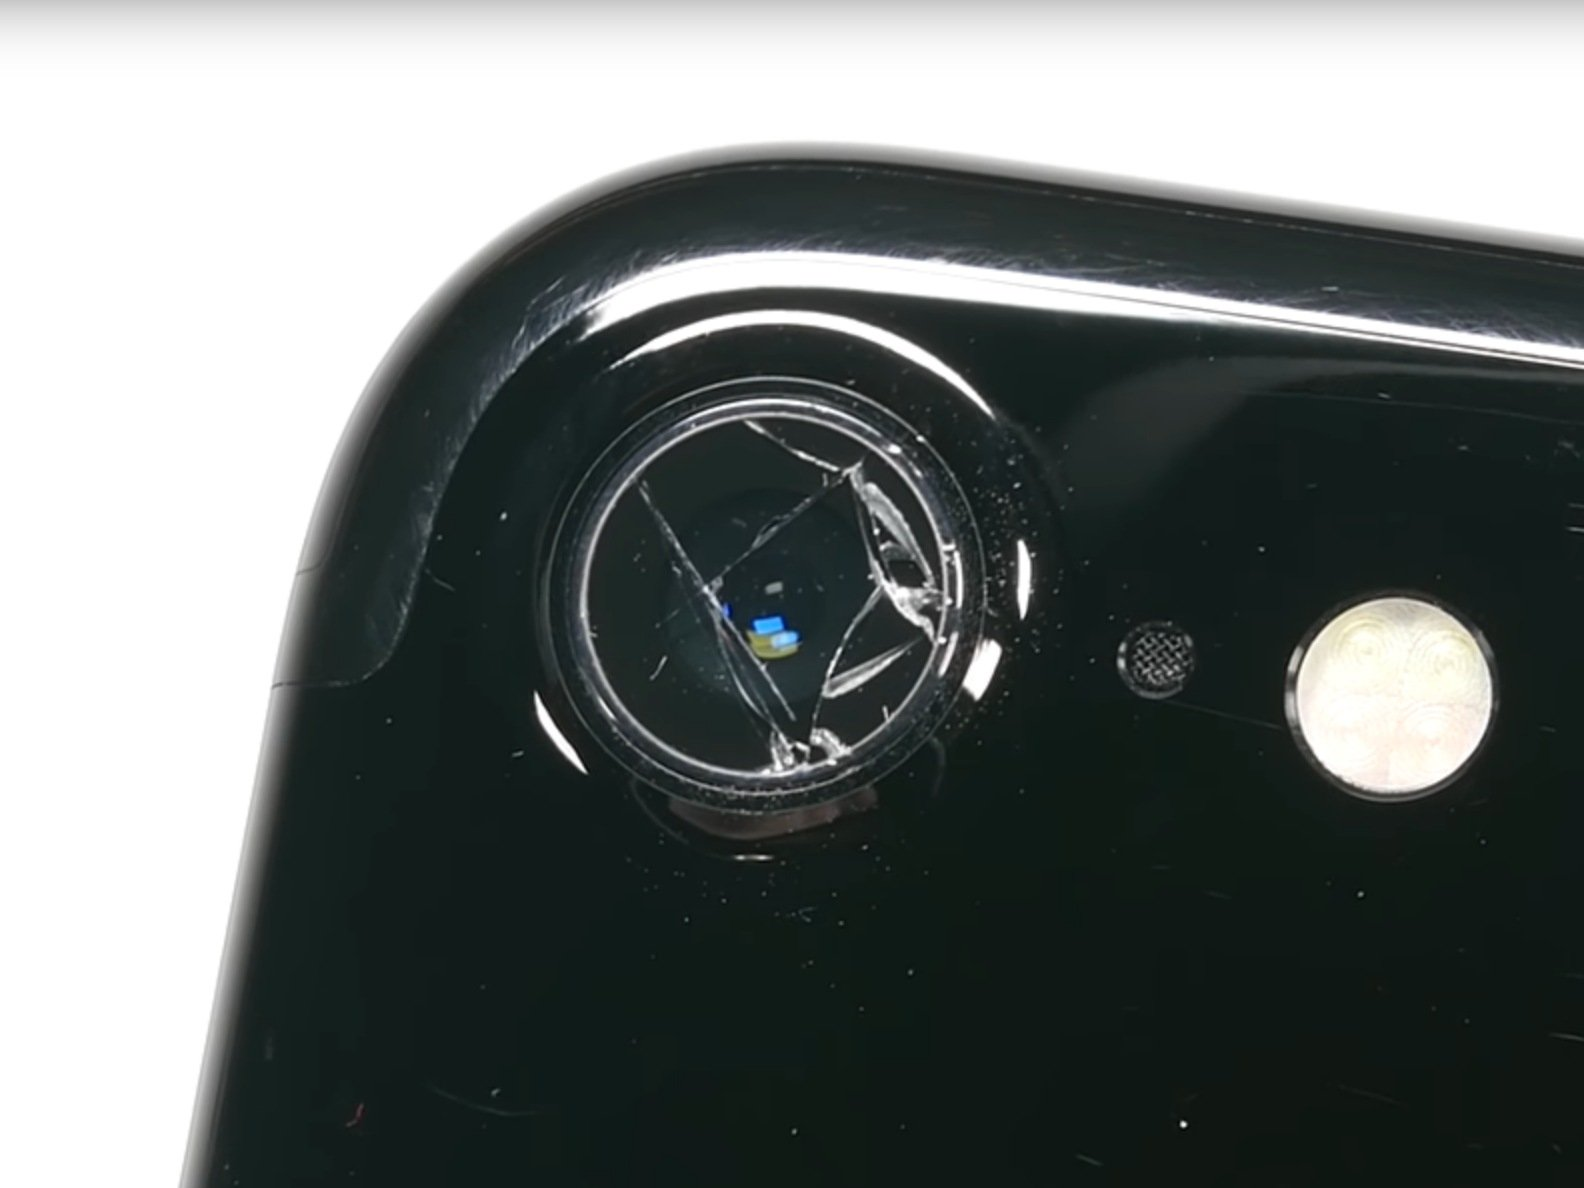 best website 012ac 67abd iPhone 7 Camera Cover Glass Replacement - iFixit Repair Guide